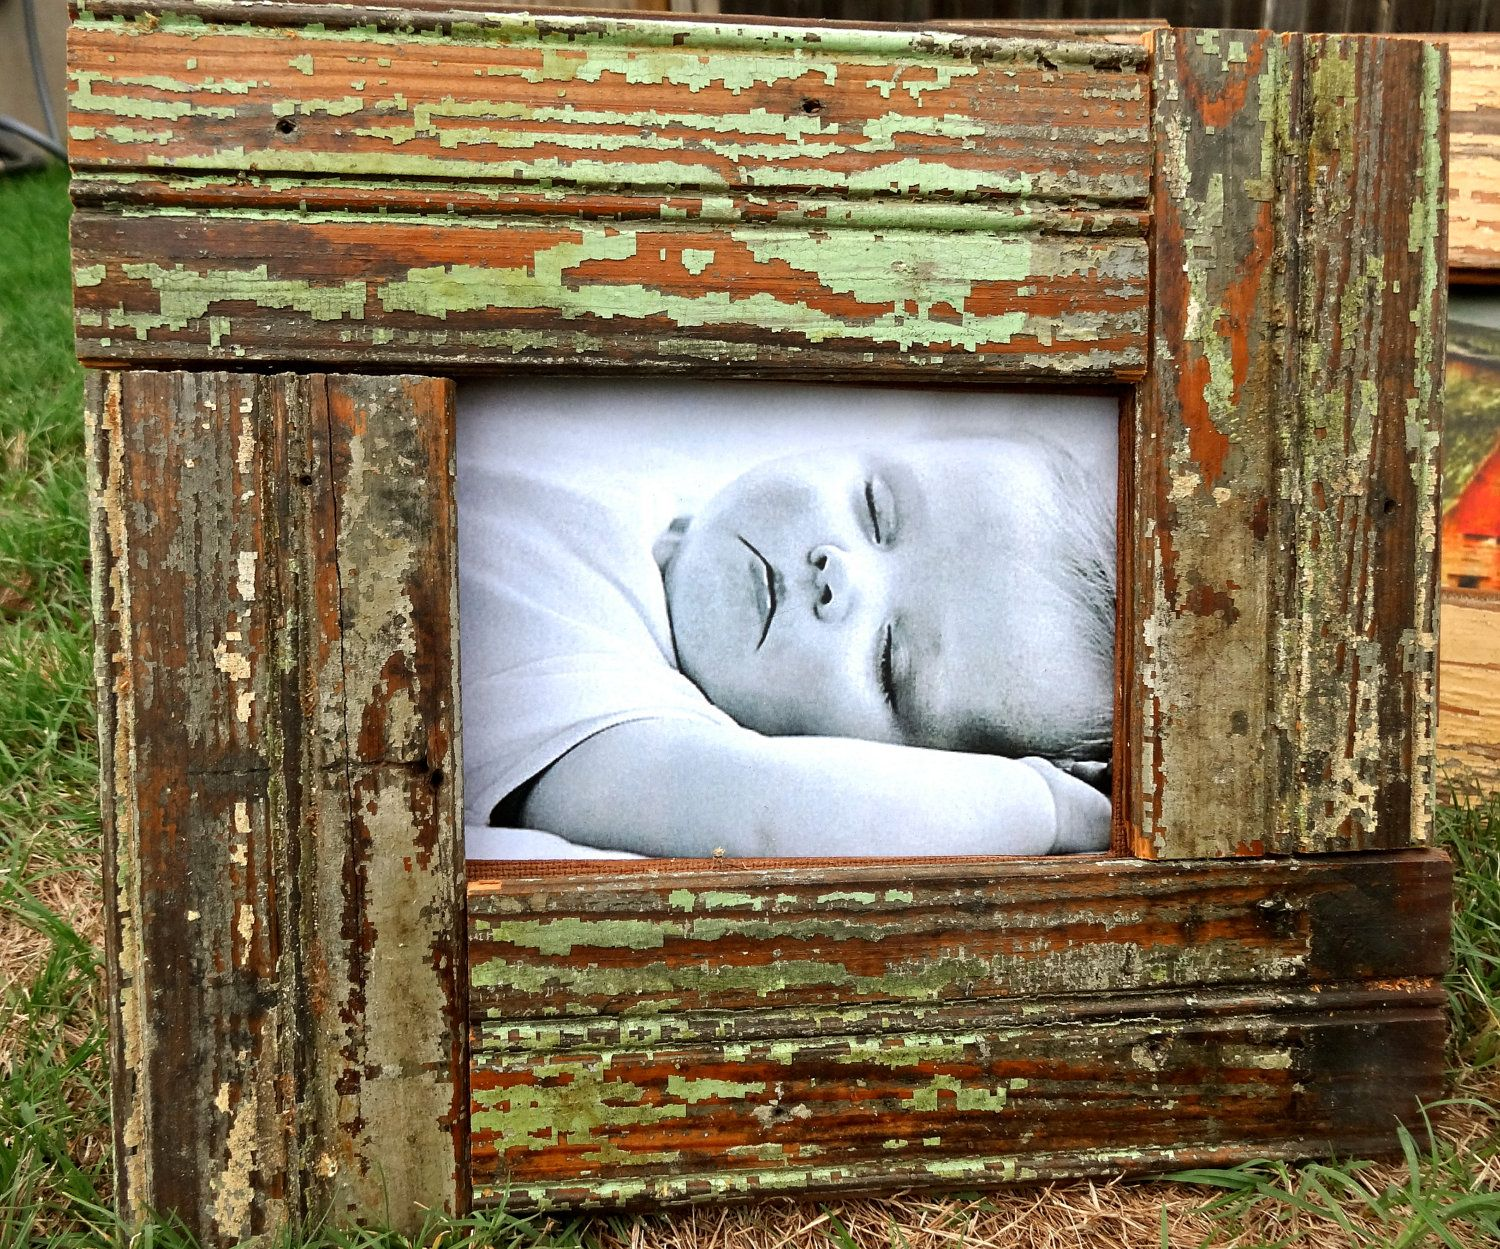 Reclaimed Wood Frame - use the old painted board stored in our shed ...